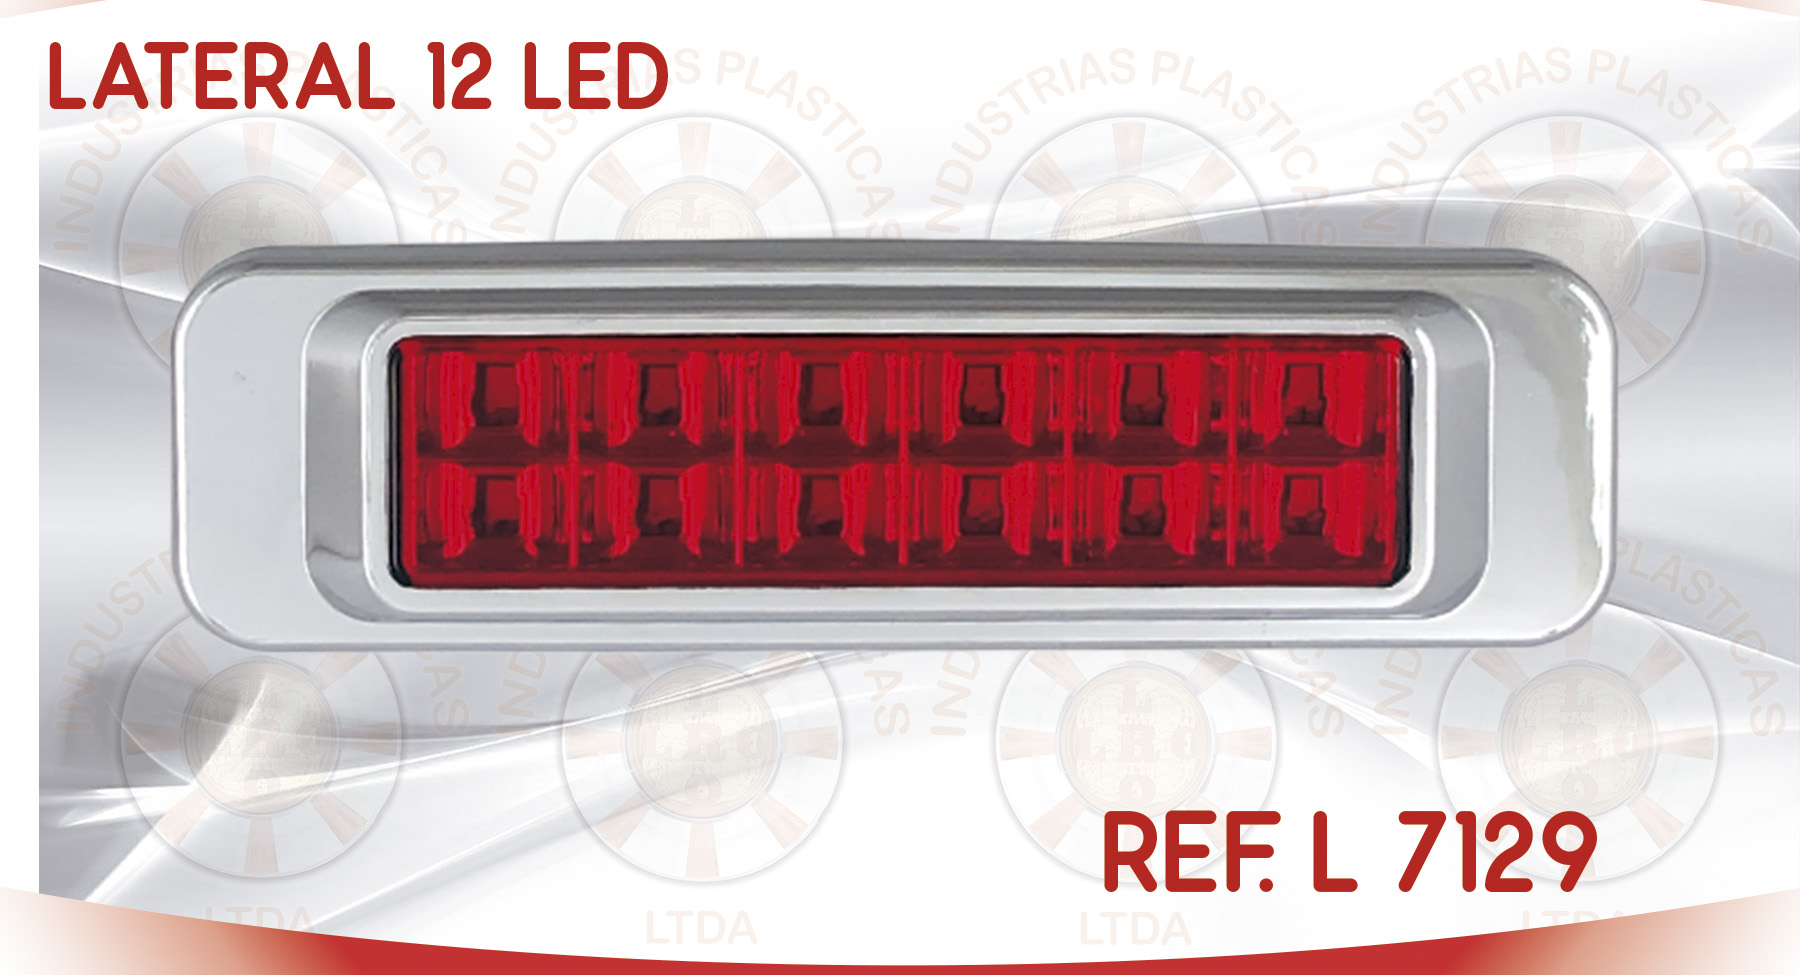 L 7129 LATERAL 12 LED